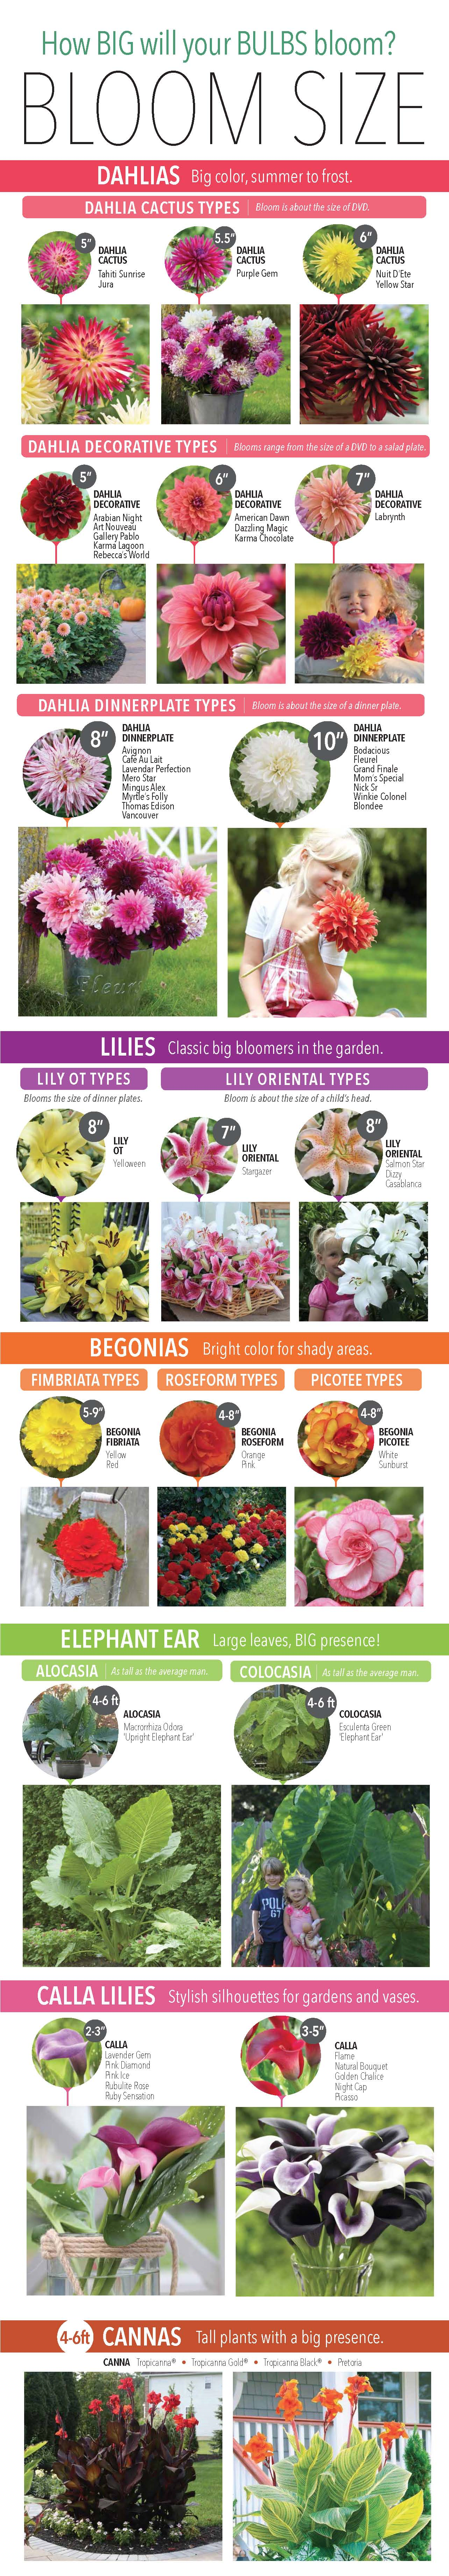 BloomSize_infographic.2